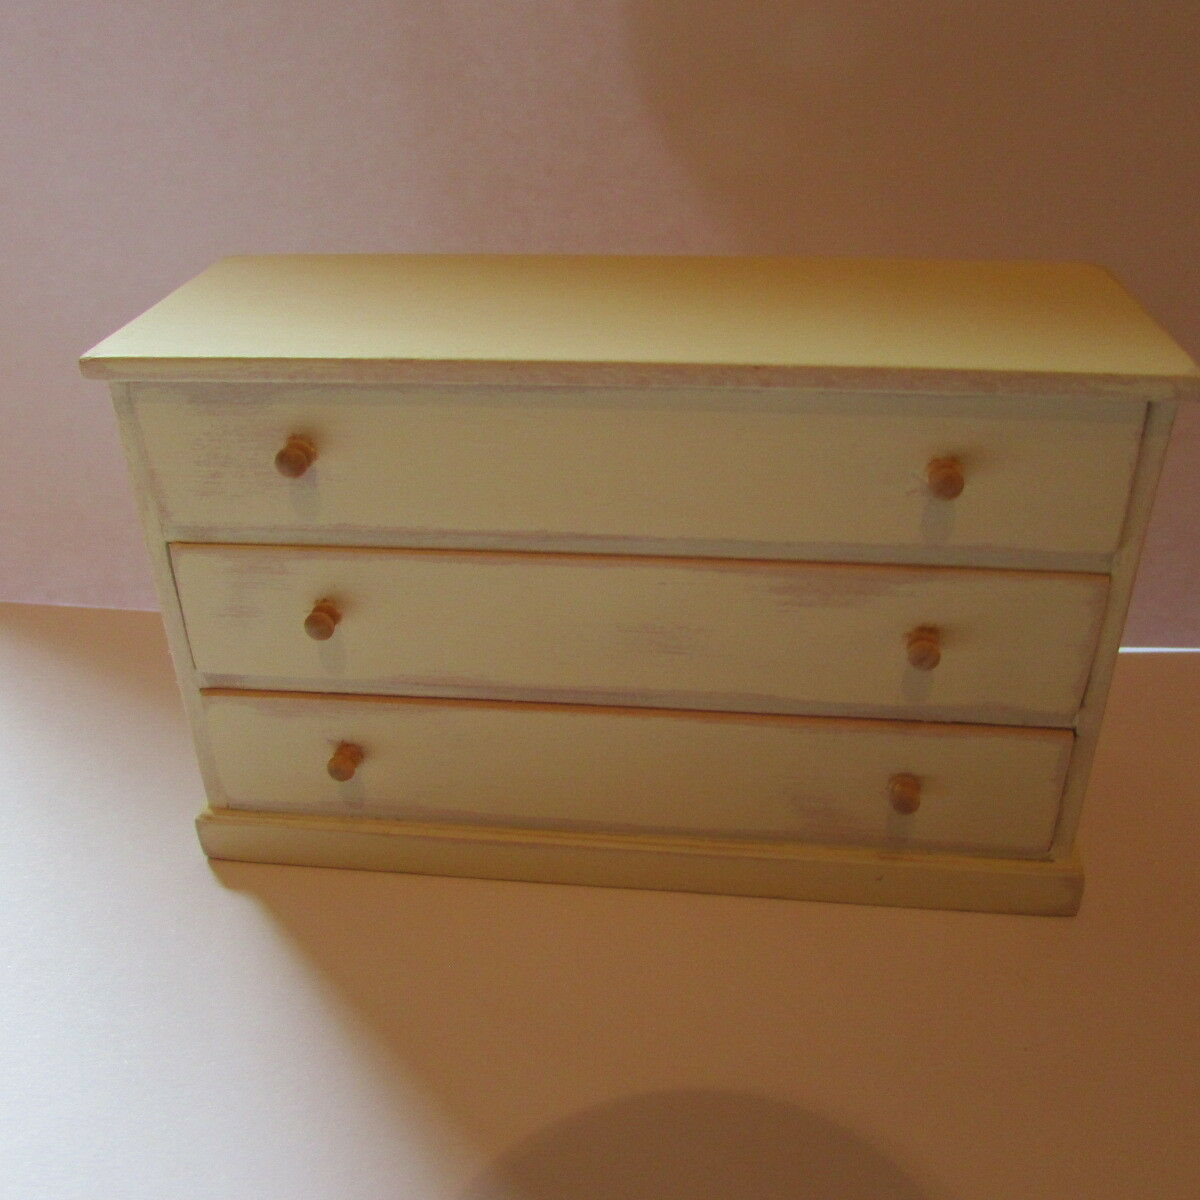 Dollhouse miniature chest of drawers hand painted cream in distressed style1 12